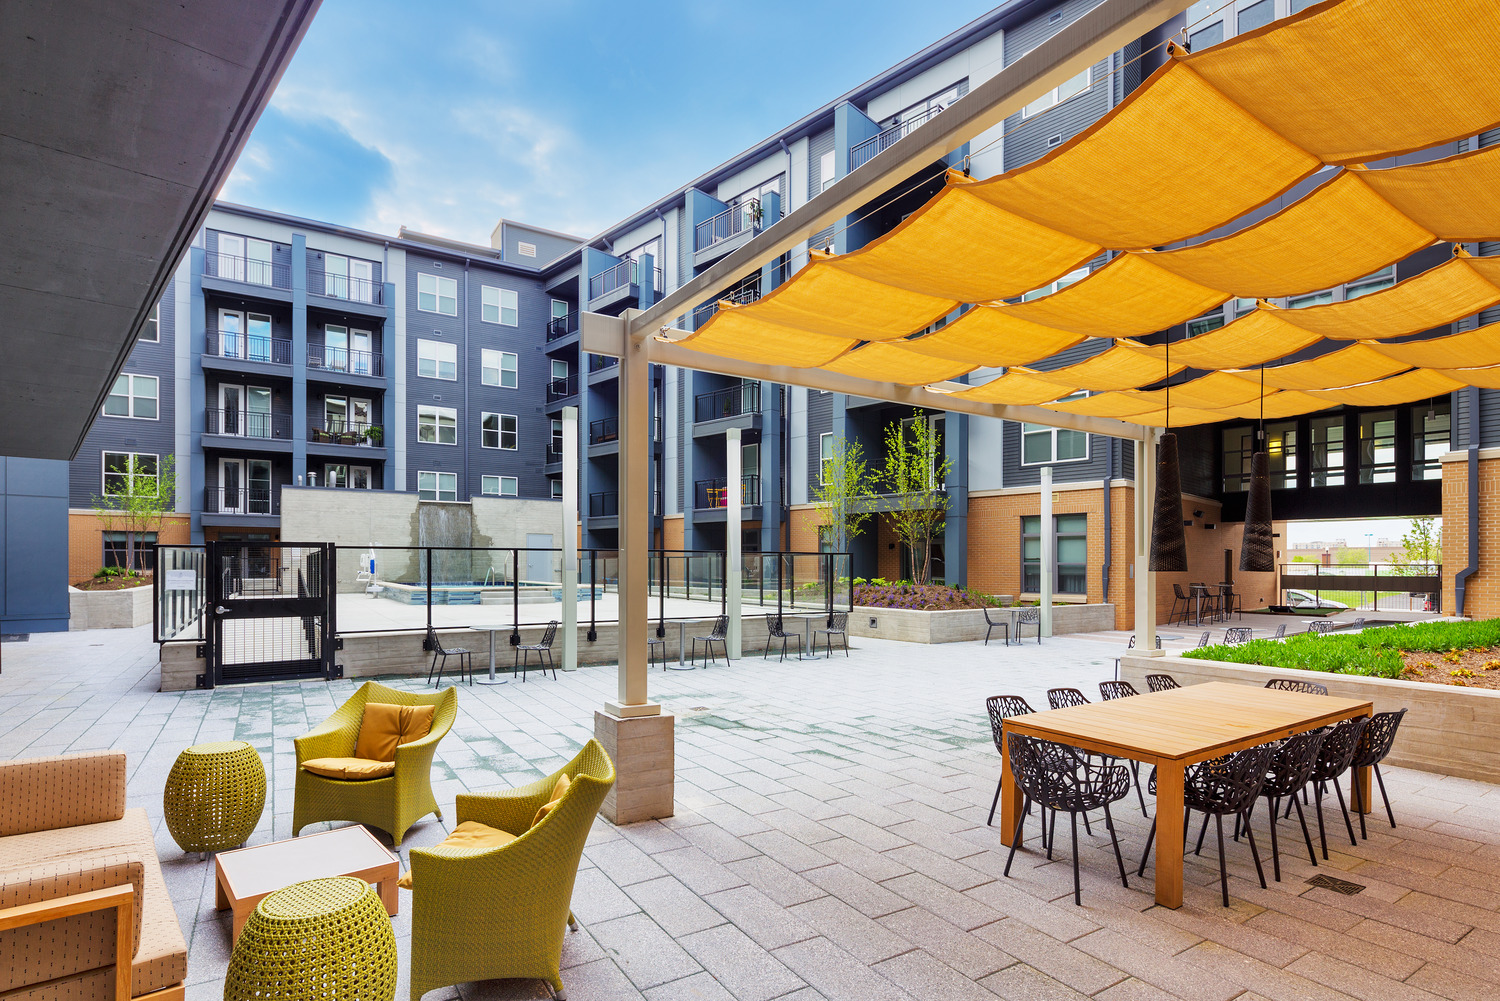 CBG builds Avalon Potomac Yard, a 331-Unit Luxury Apartment Community in Two Buildings Over a Shared Below-Grade Garage in Alexandria, VA - Image #4